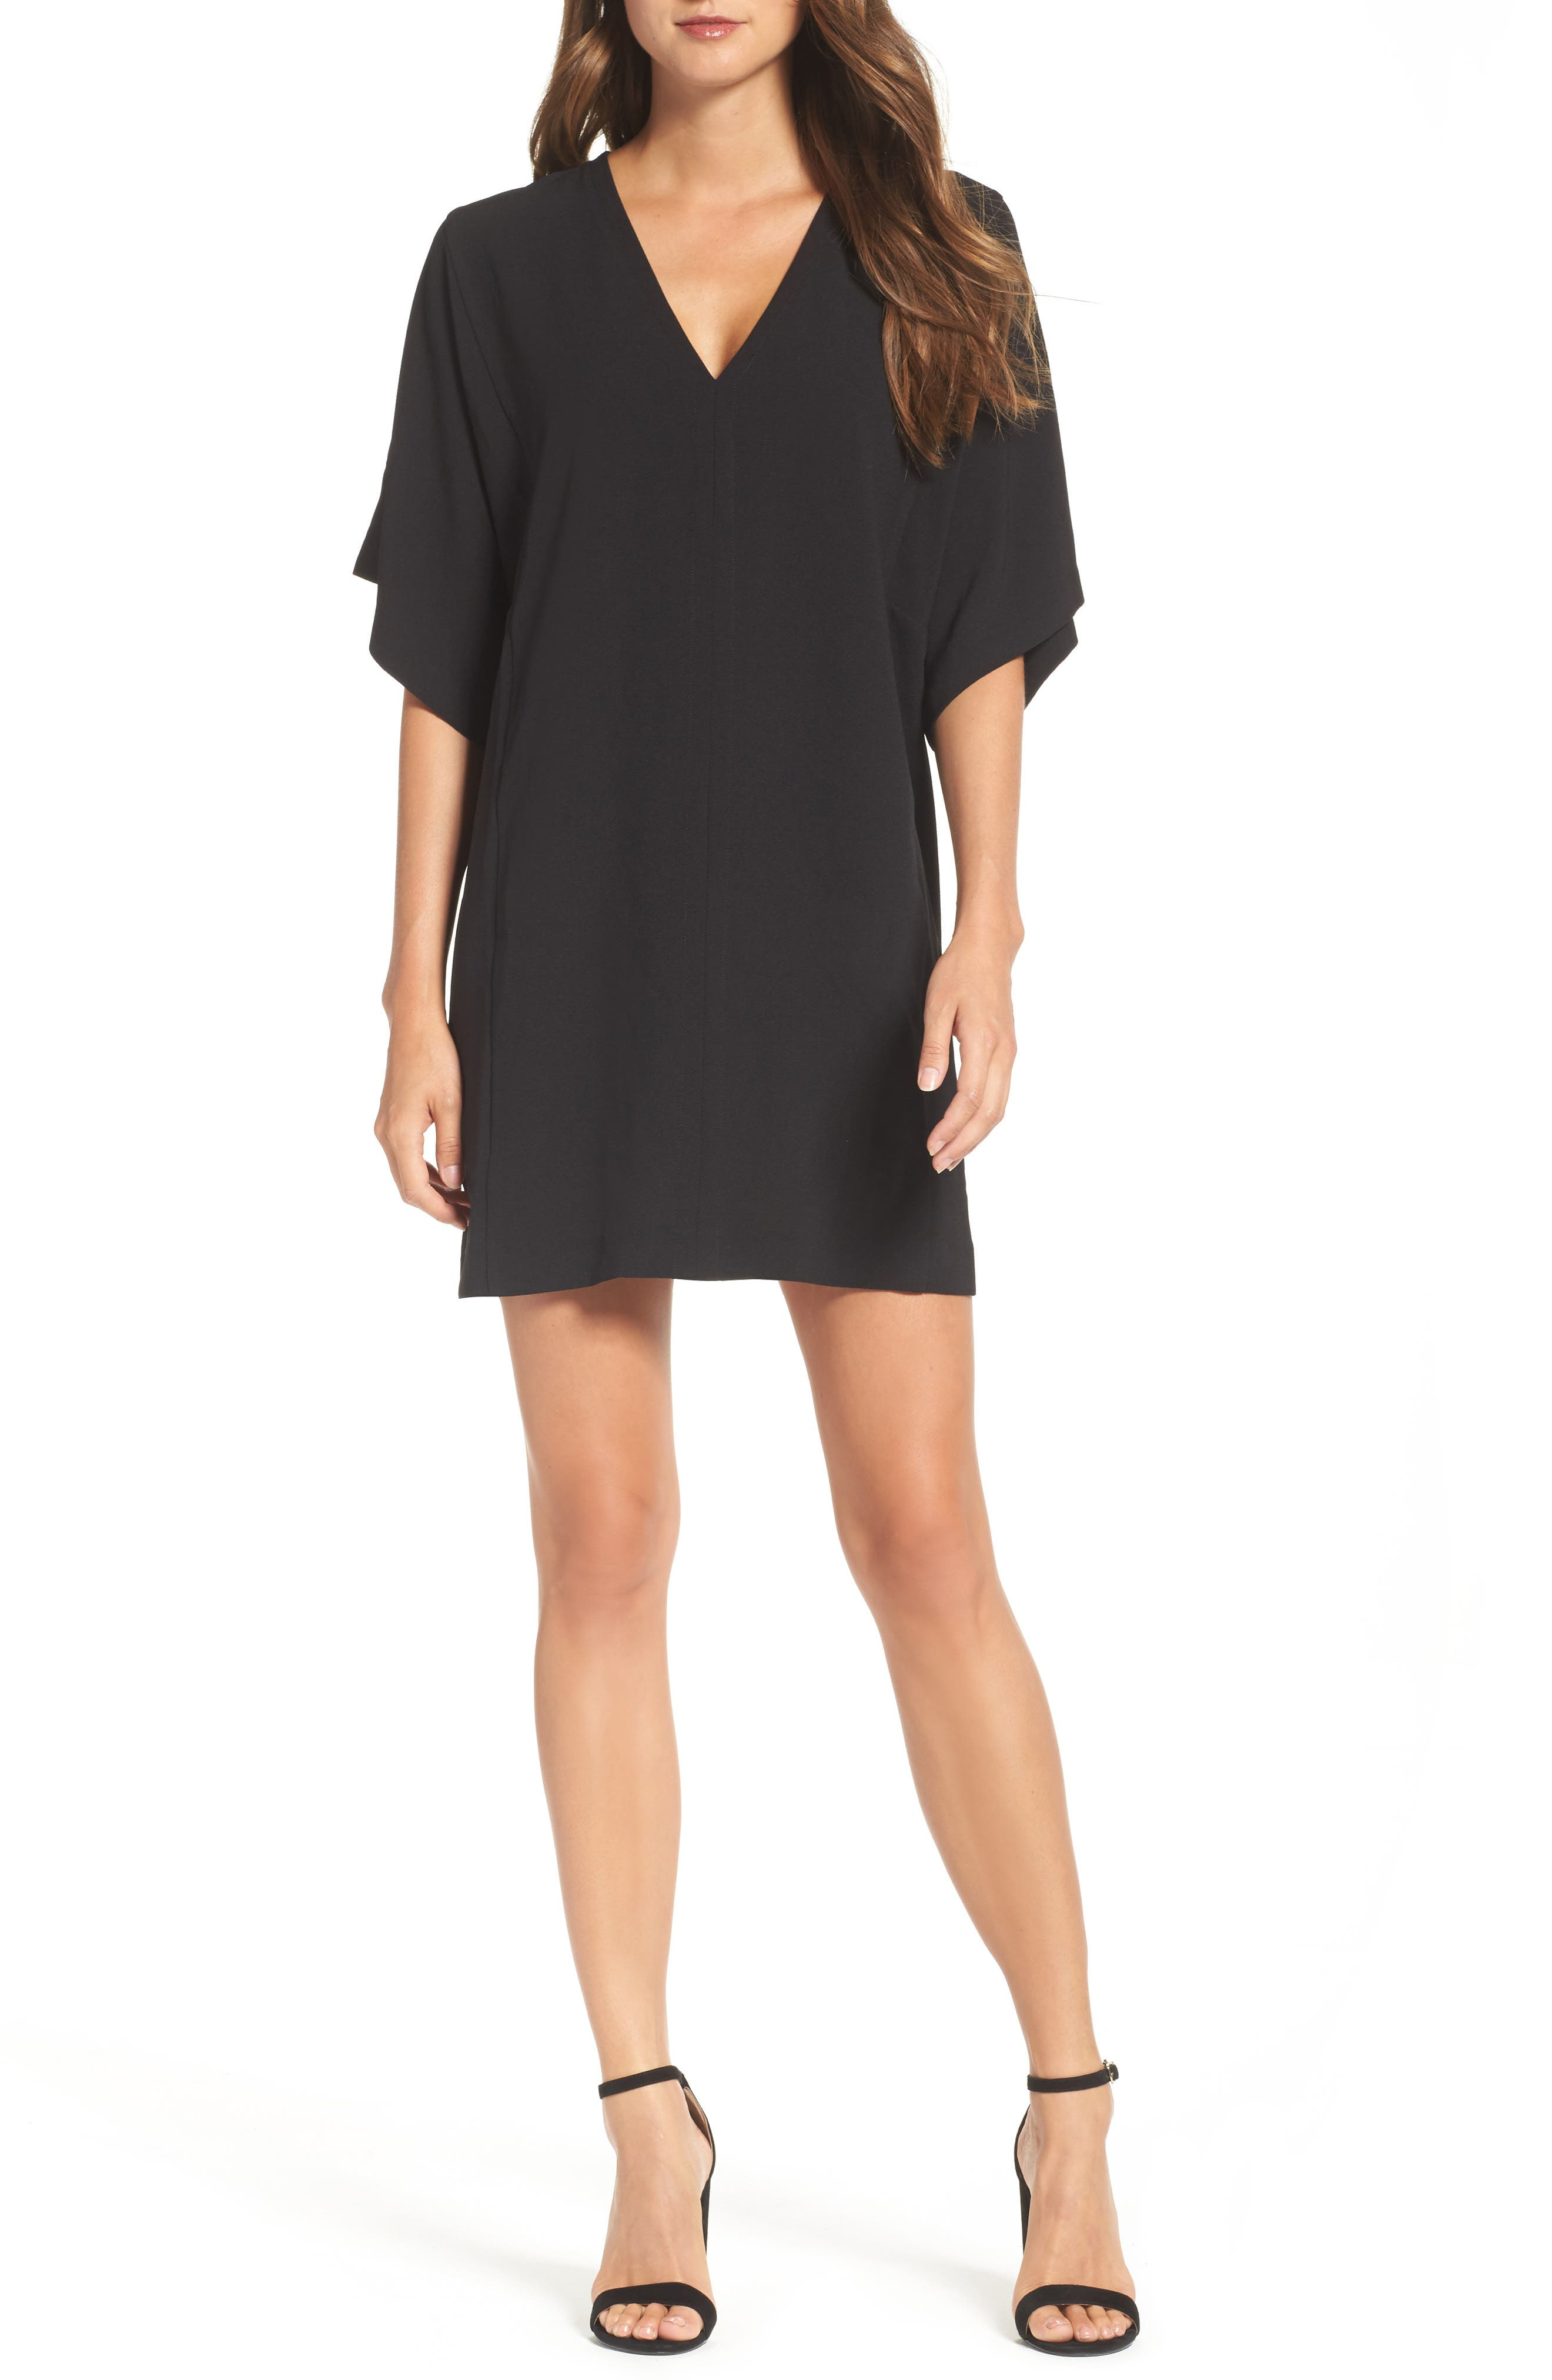 Alternate Image 1 Selected - Felicity & Coco Sasha Shift Minidress (Nordstrom Exclusive)